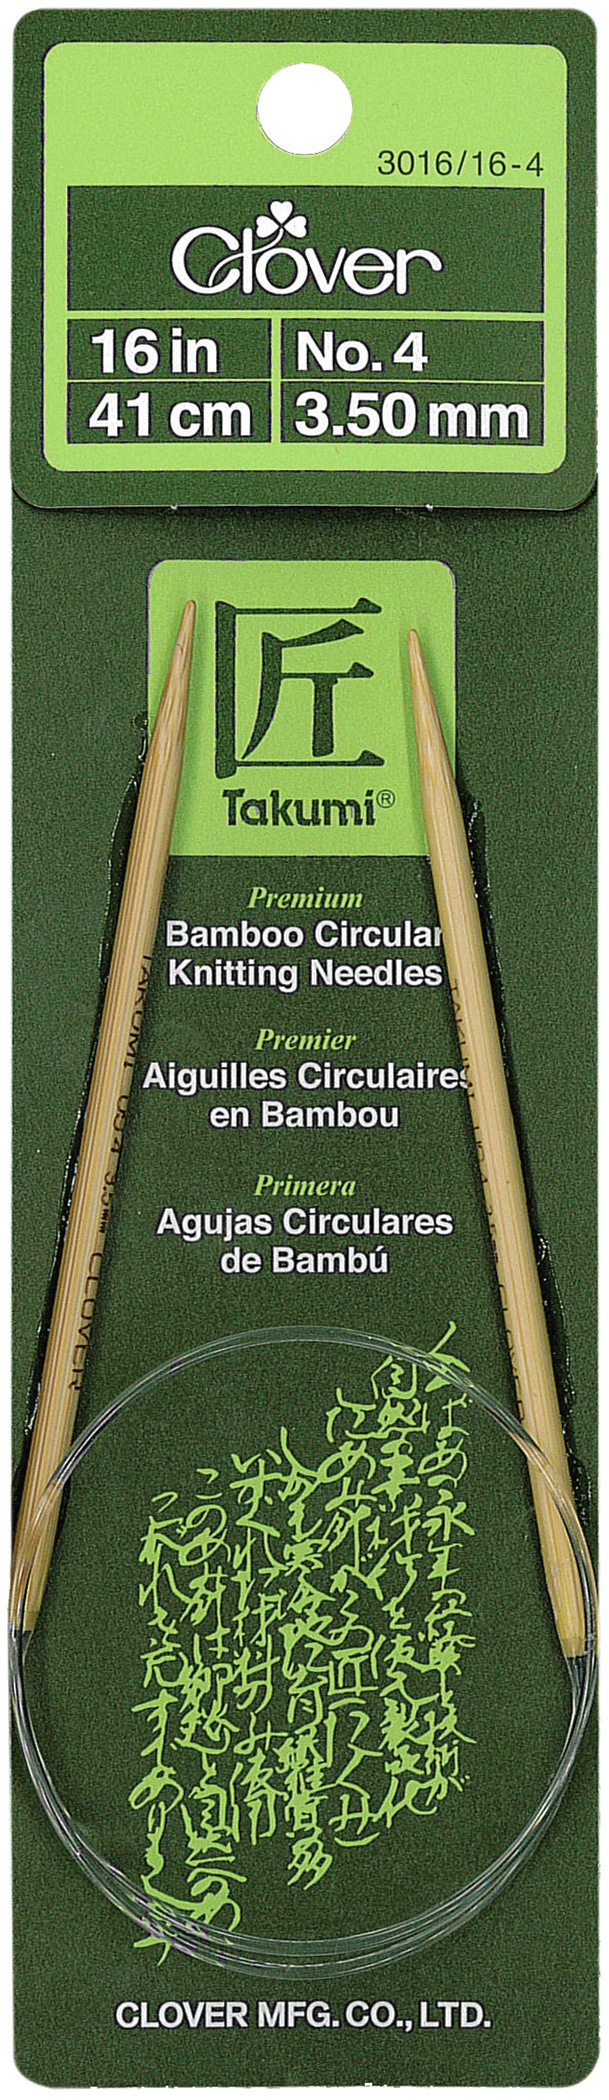 Takumi Bamboo Circular Knitting Needles 16-Size 4/3.5mm